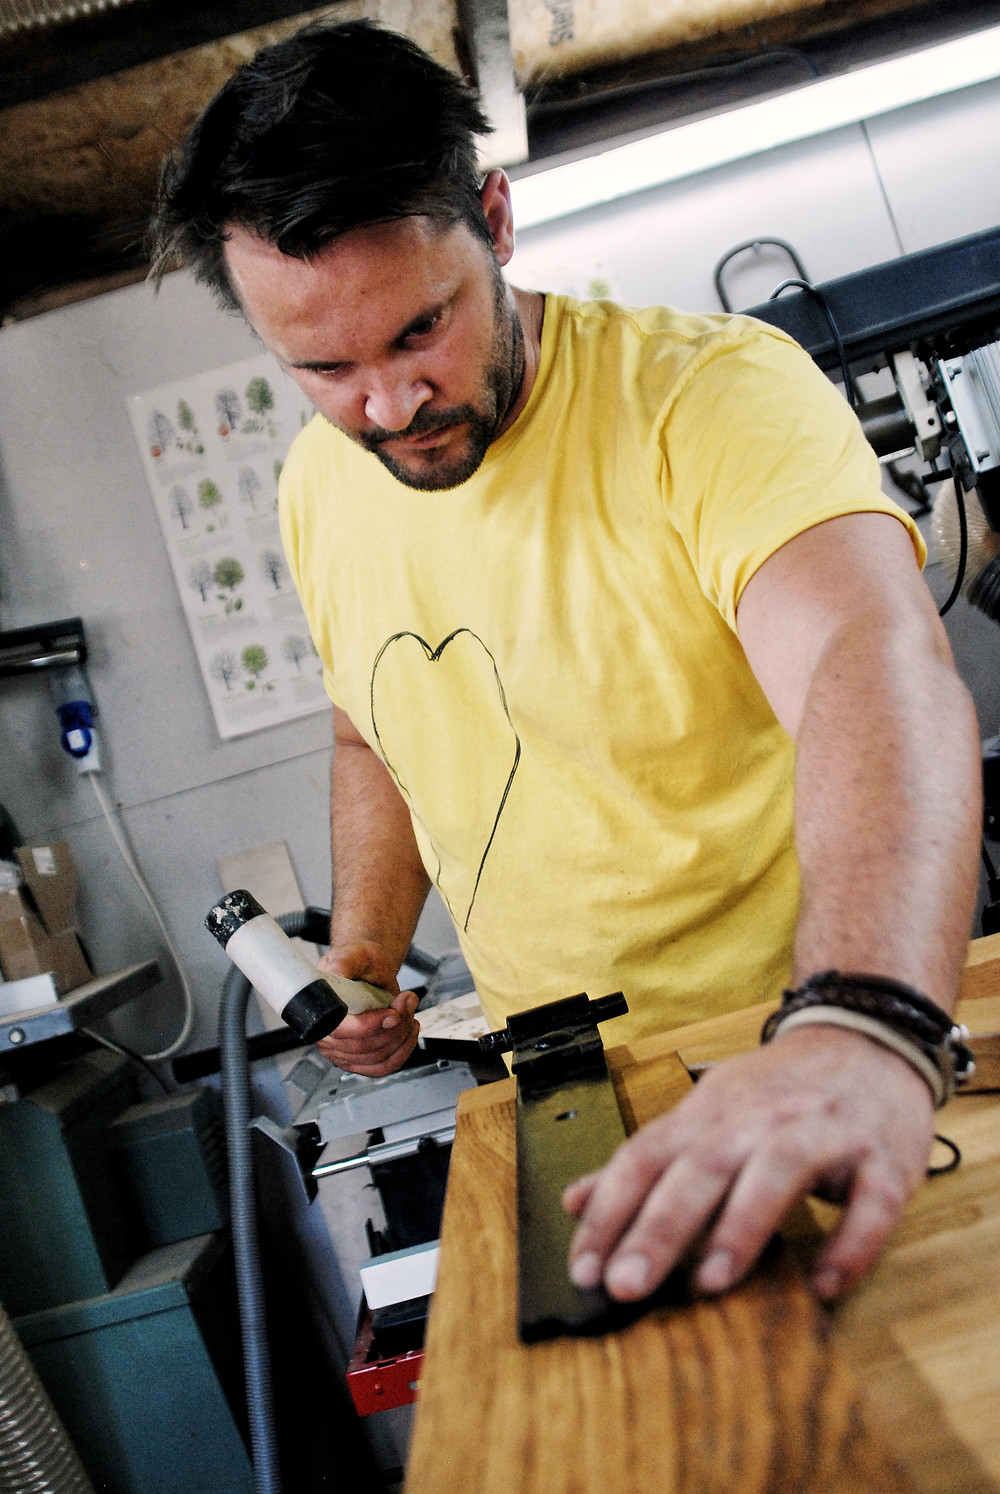 Man in yellow t-shirt working with wood in a workshop